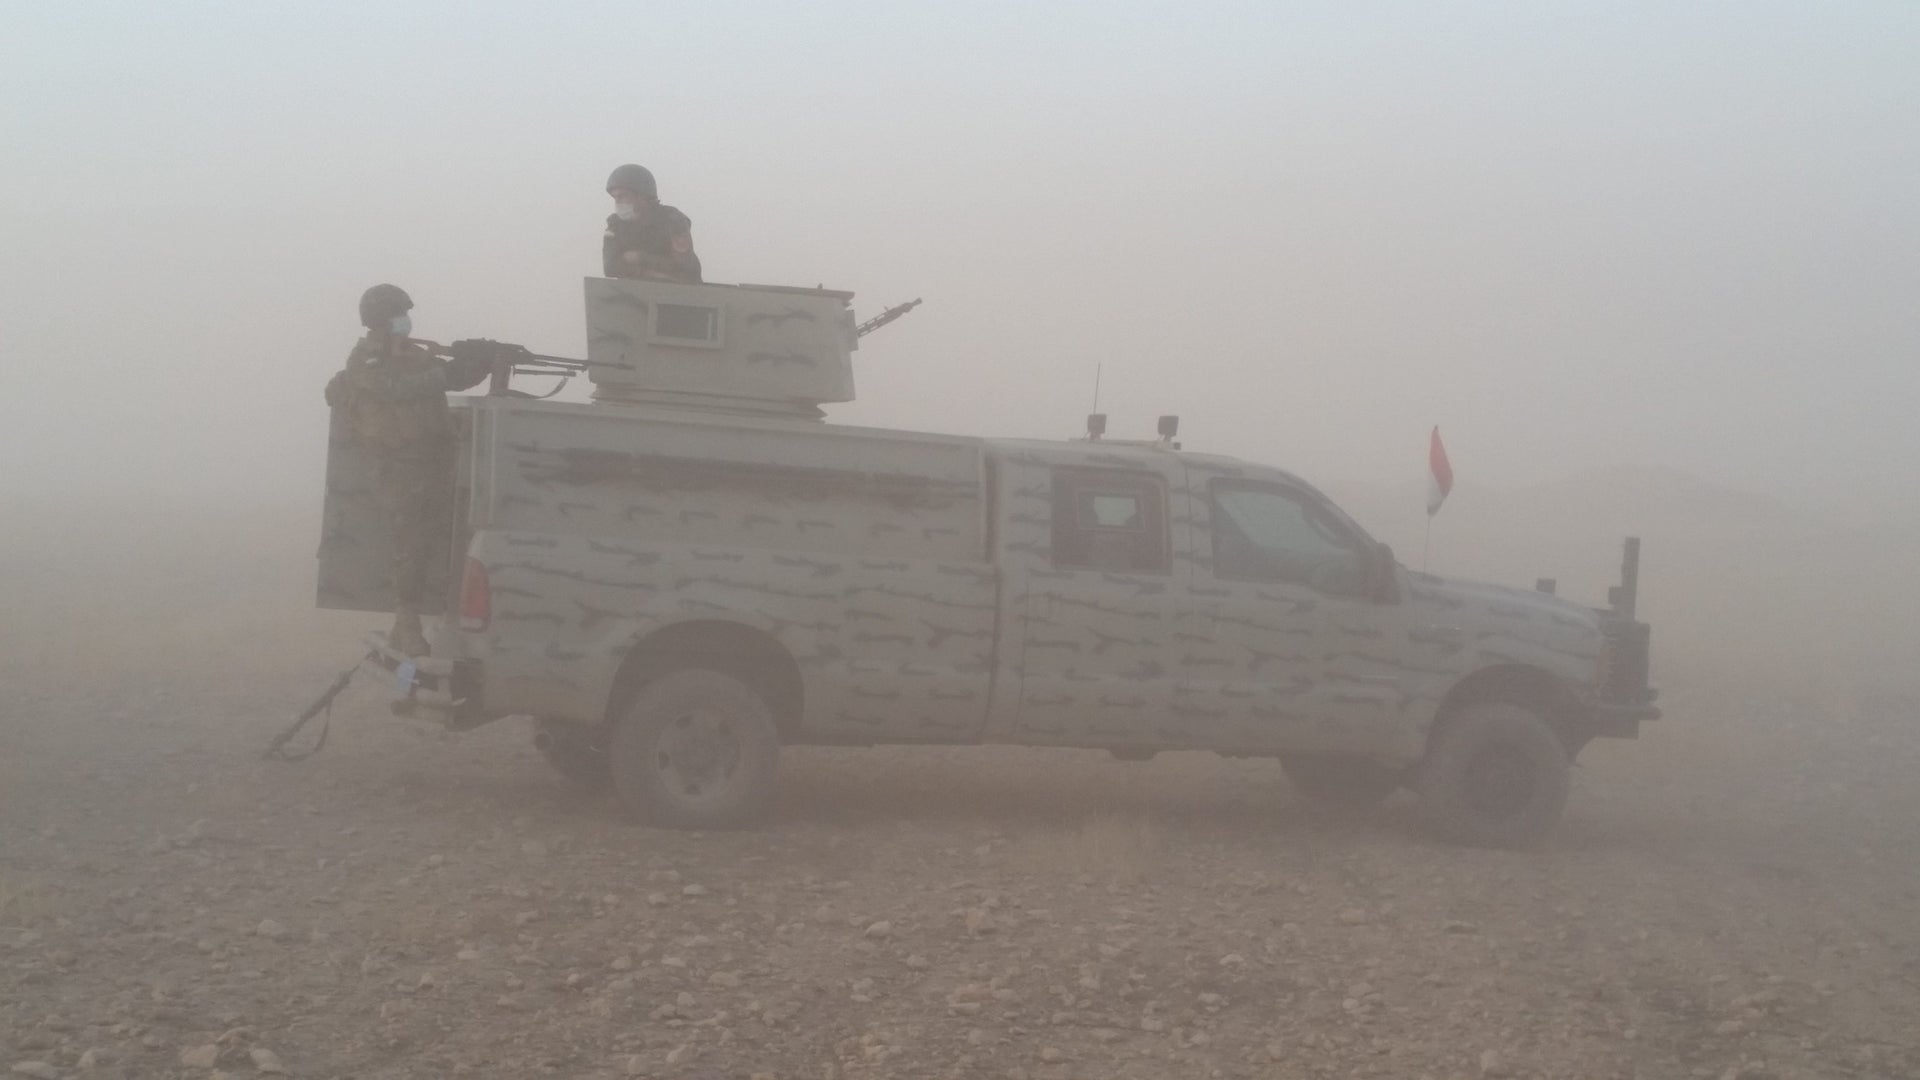 Peshmerga soldiers on the road to Mosul, October 23, 2016.